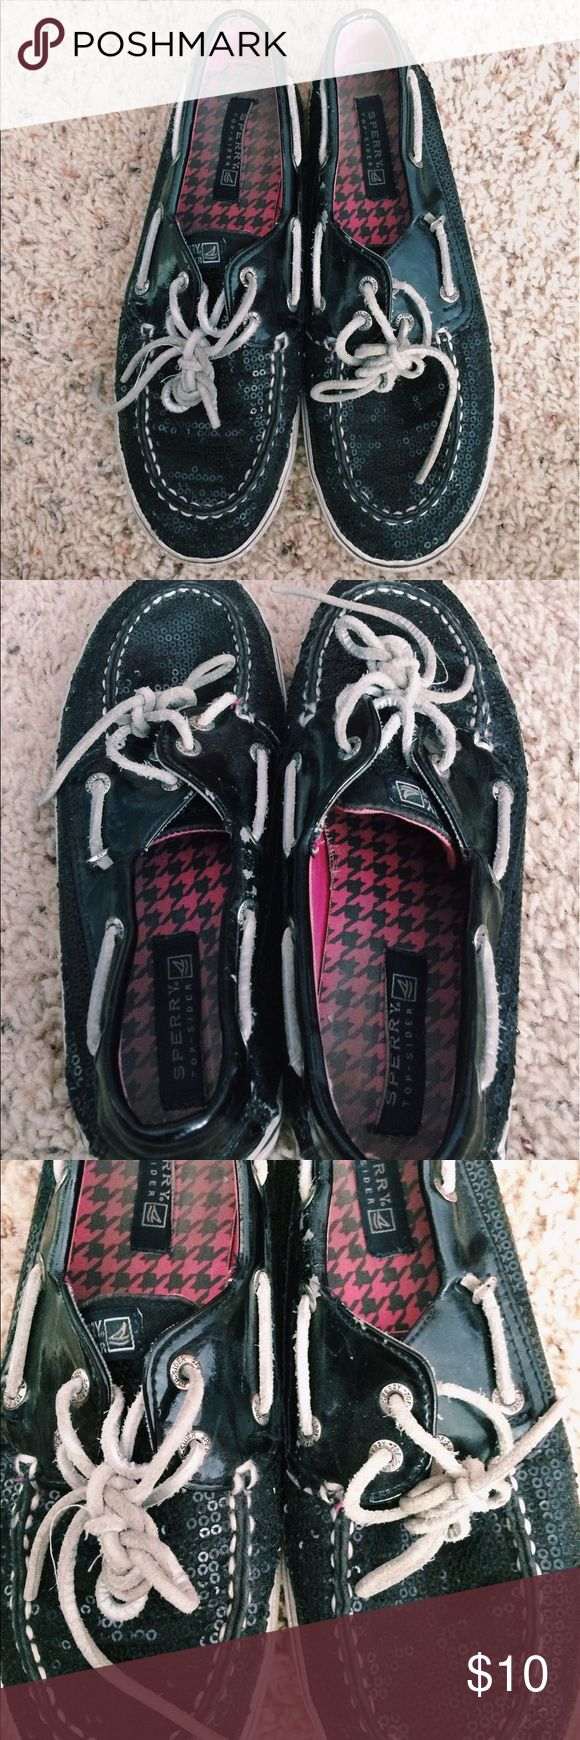 Sparkly Black Sperrys Size 5 purchased from the girls section. In pretty good condition but shoes signs of wear (last photos). Sperry Shoes Flats & Loafers